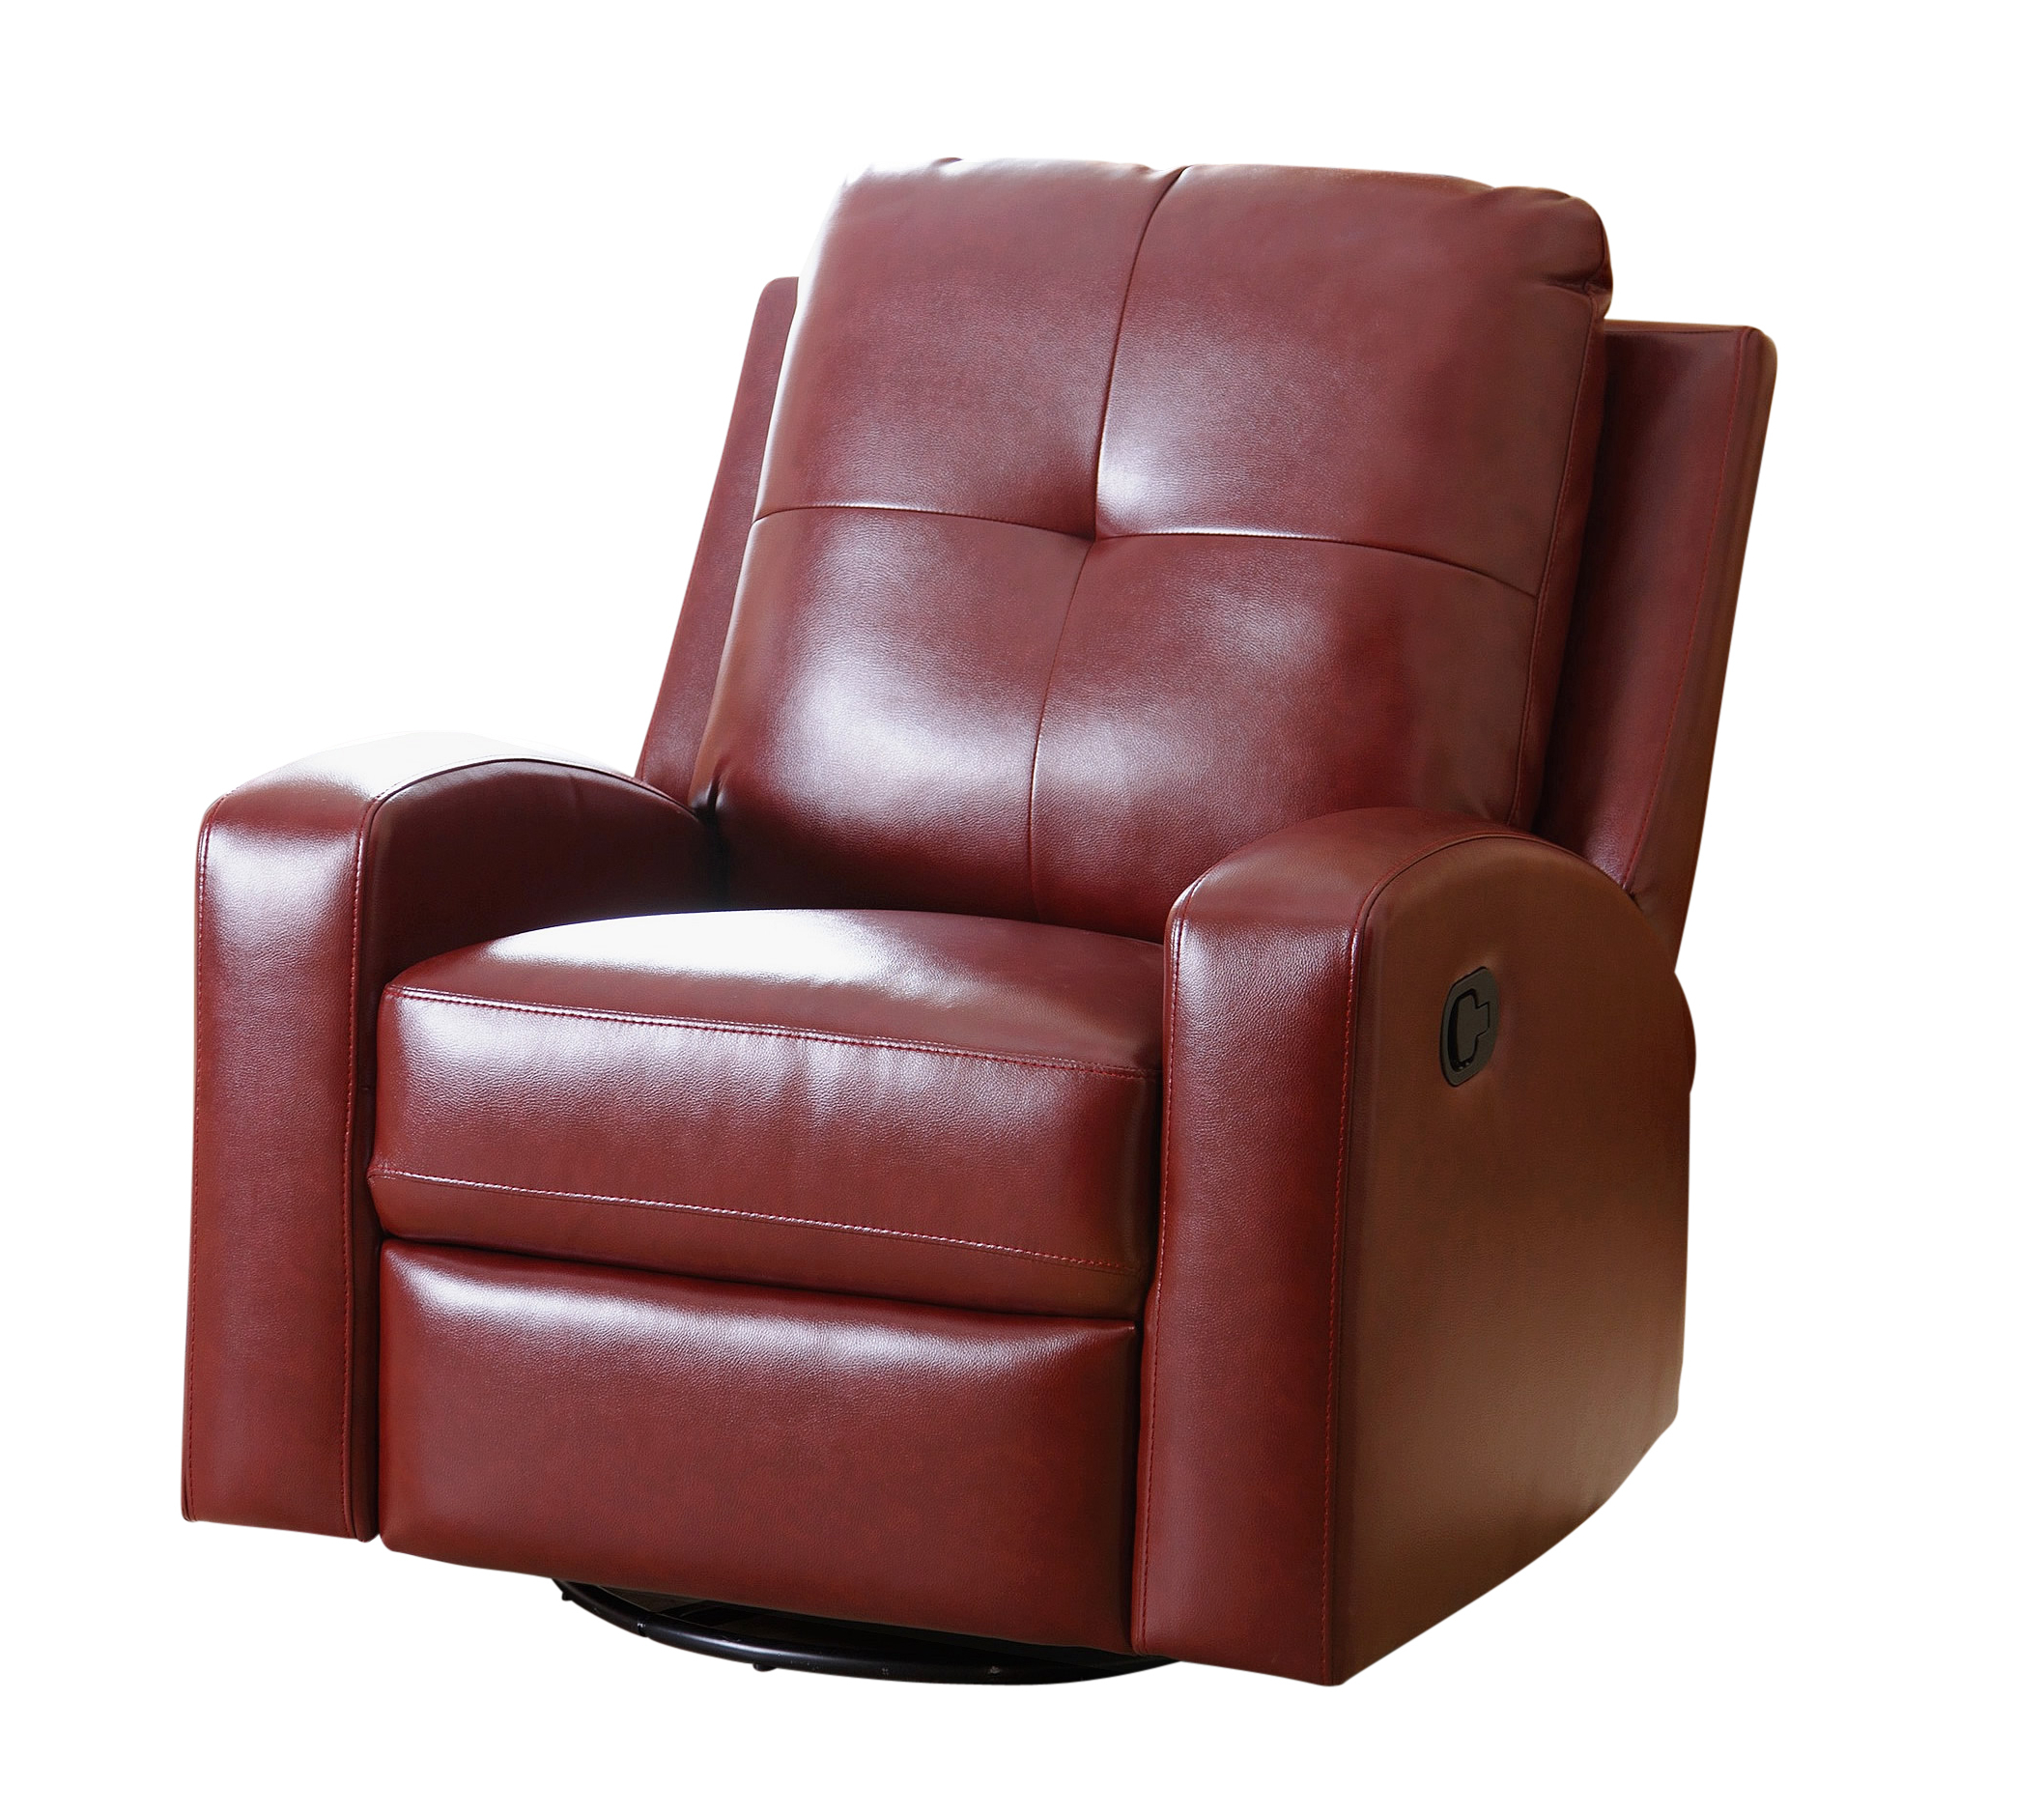 Most Recent Katrina Swivel Glider Recliner, Red – Walmart With Katrina Beige Swivel Glider Chairs (View 19 of 20)